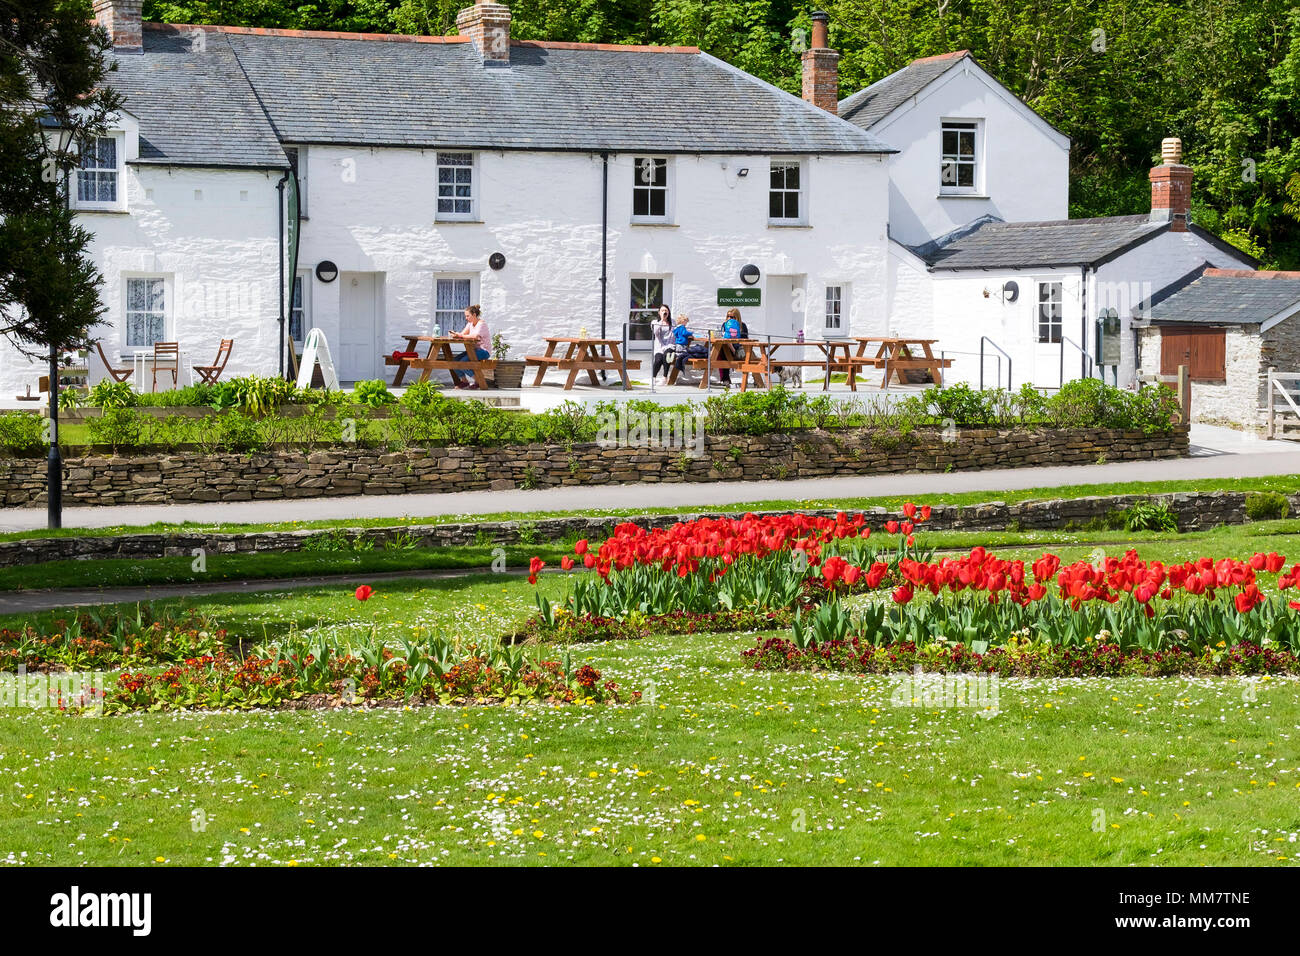 The Heritage Cottages in Trenance Park in Newquay in Cornwall. - Stock Image